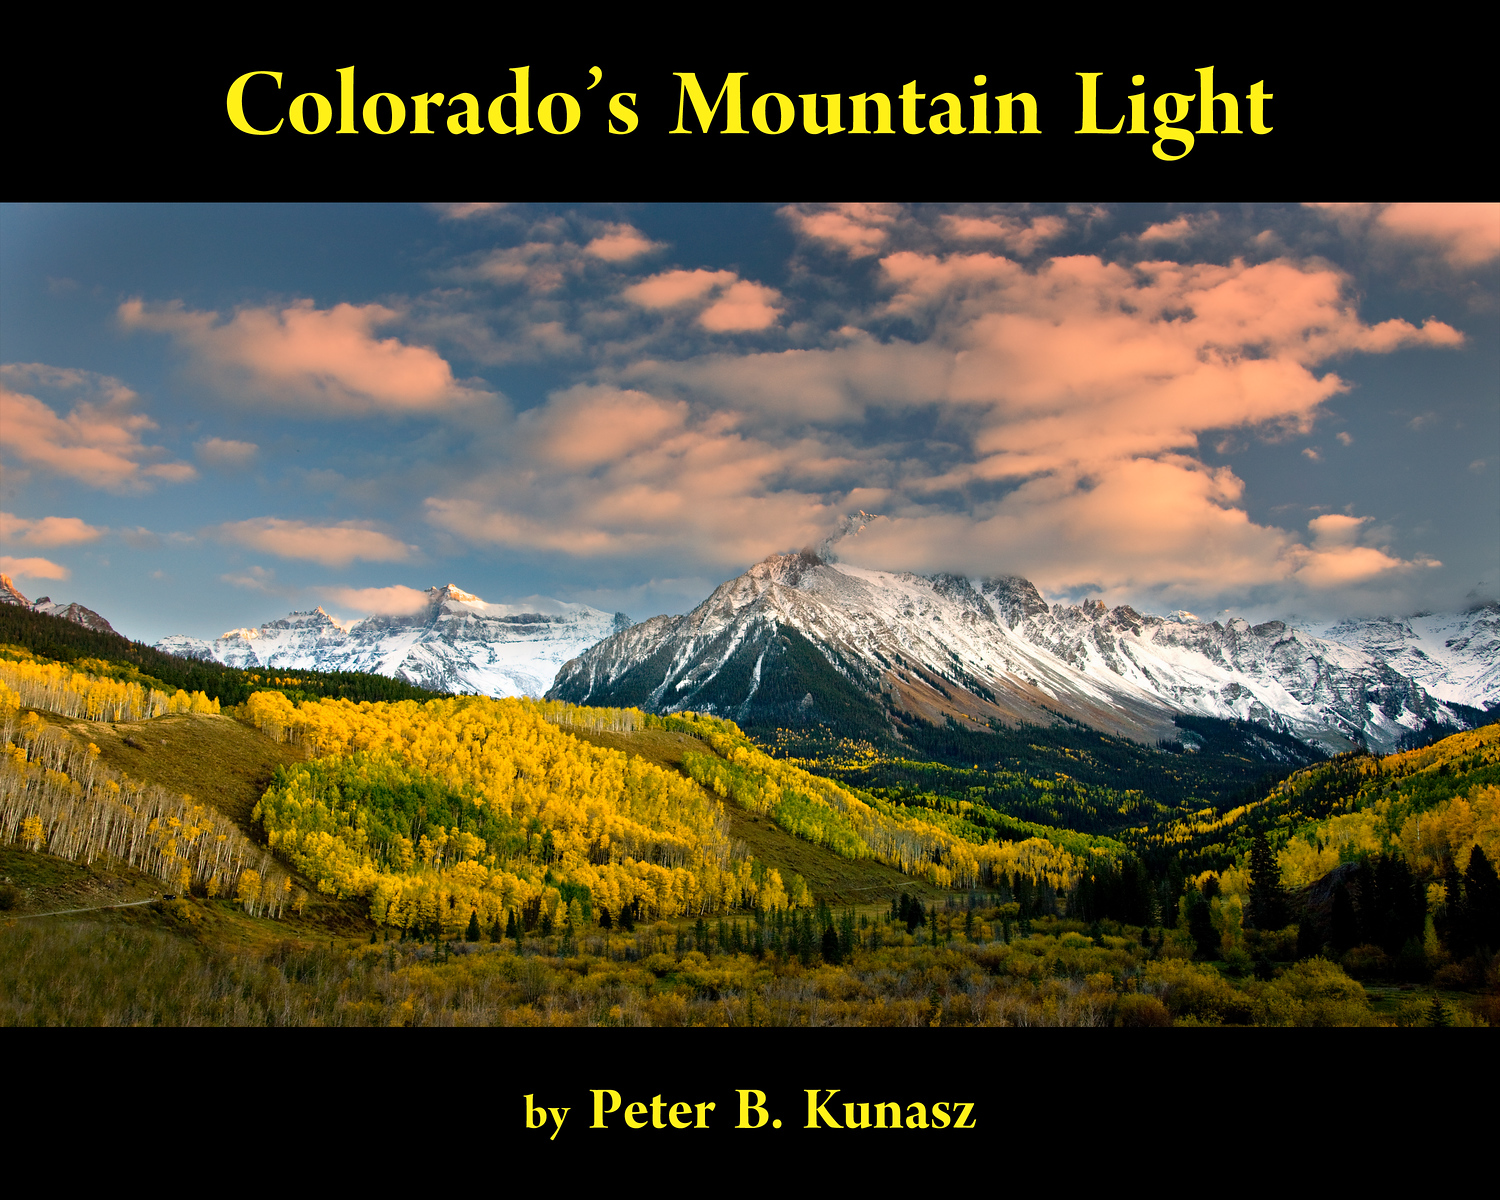 "<font color=""69BF9""> PREVIEW AND PURCHASE PETE'S NEW BOOK FEATURING COLORADO'S SAN JUAN MOUNTAINS , <a href=""http://www.blurb.com/bookstore/detail/1520969"" target=""_blank"">COLORADO'S MOUNTAIN LIGHT</a>    <br> ""COLORADO'S MOUNTAIN LIGHT""  CAN BE PURCHASED AS A PAPERBACK OR A HARD COVER TABLE TOP EDITION. INSIDE THERE ARE 80 PAGES FILLED WITH IMAGES OF THE SAN JUAN MOUNTAINS IN WINTER AND FALL. </font>"